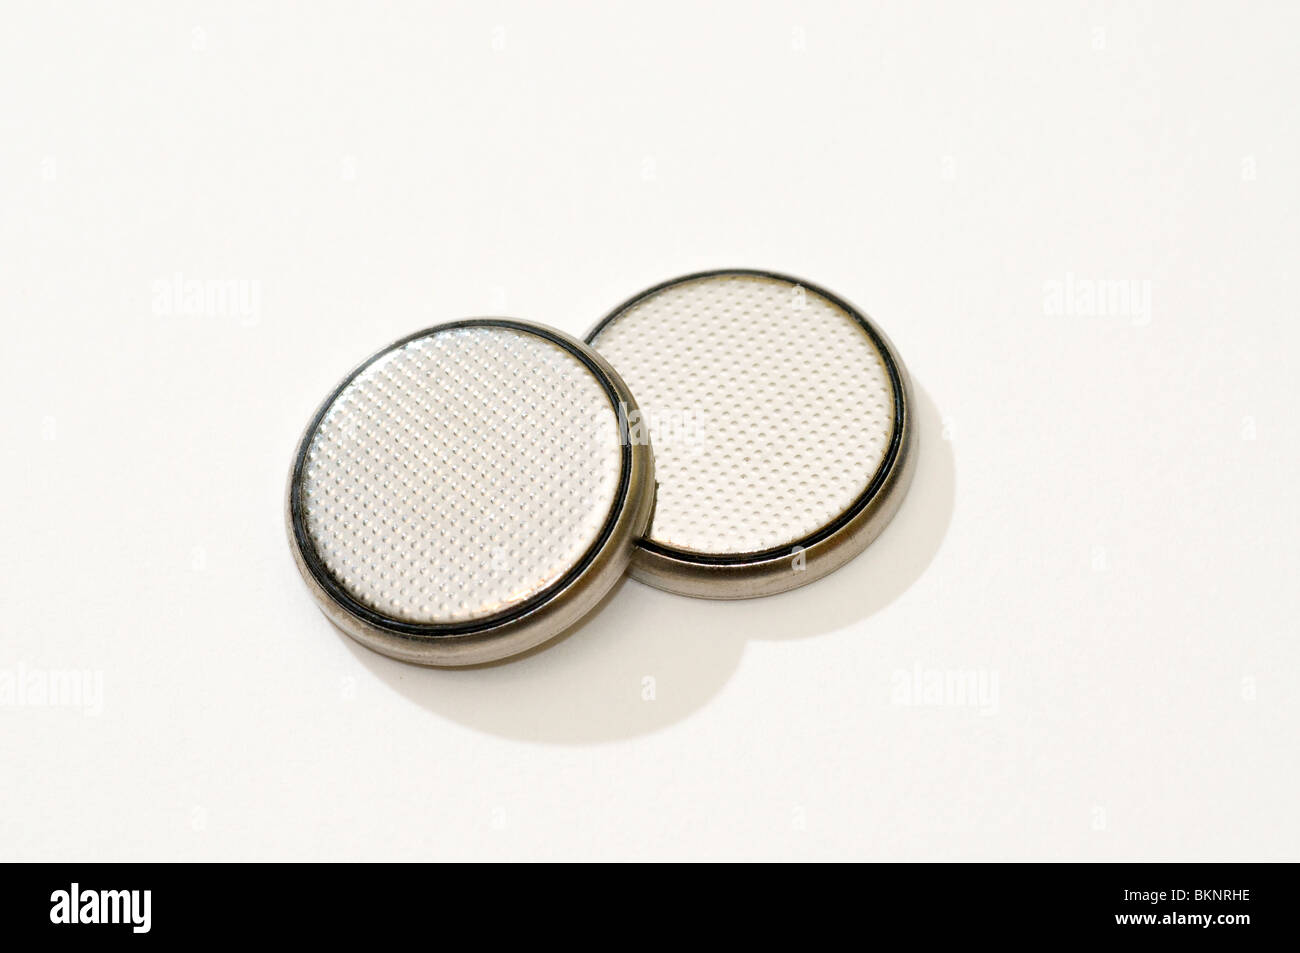 Coin batteries CR2032 - Stock Image